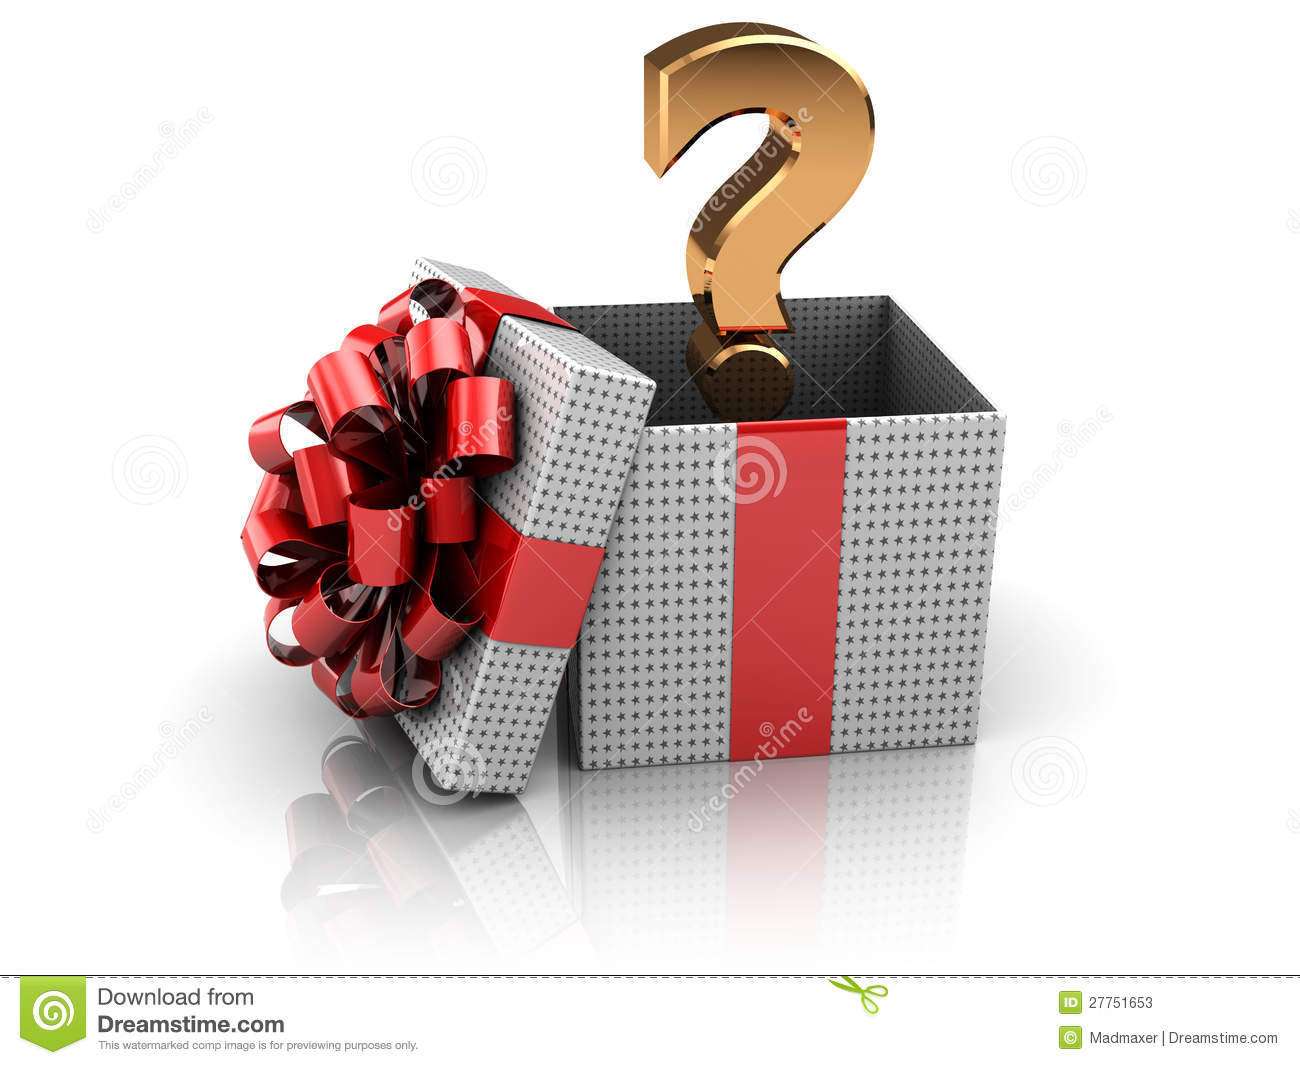 Surprise Present Stock Photos - Image: 27751653